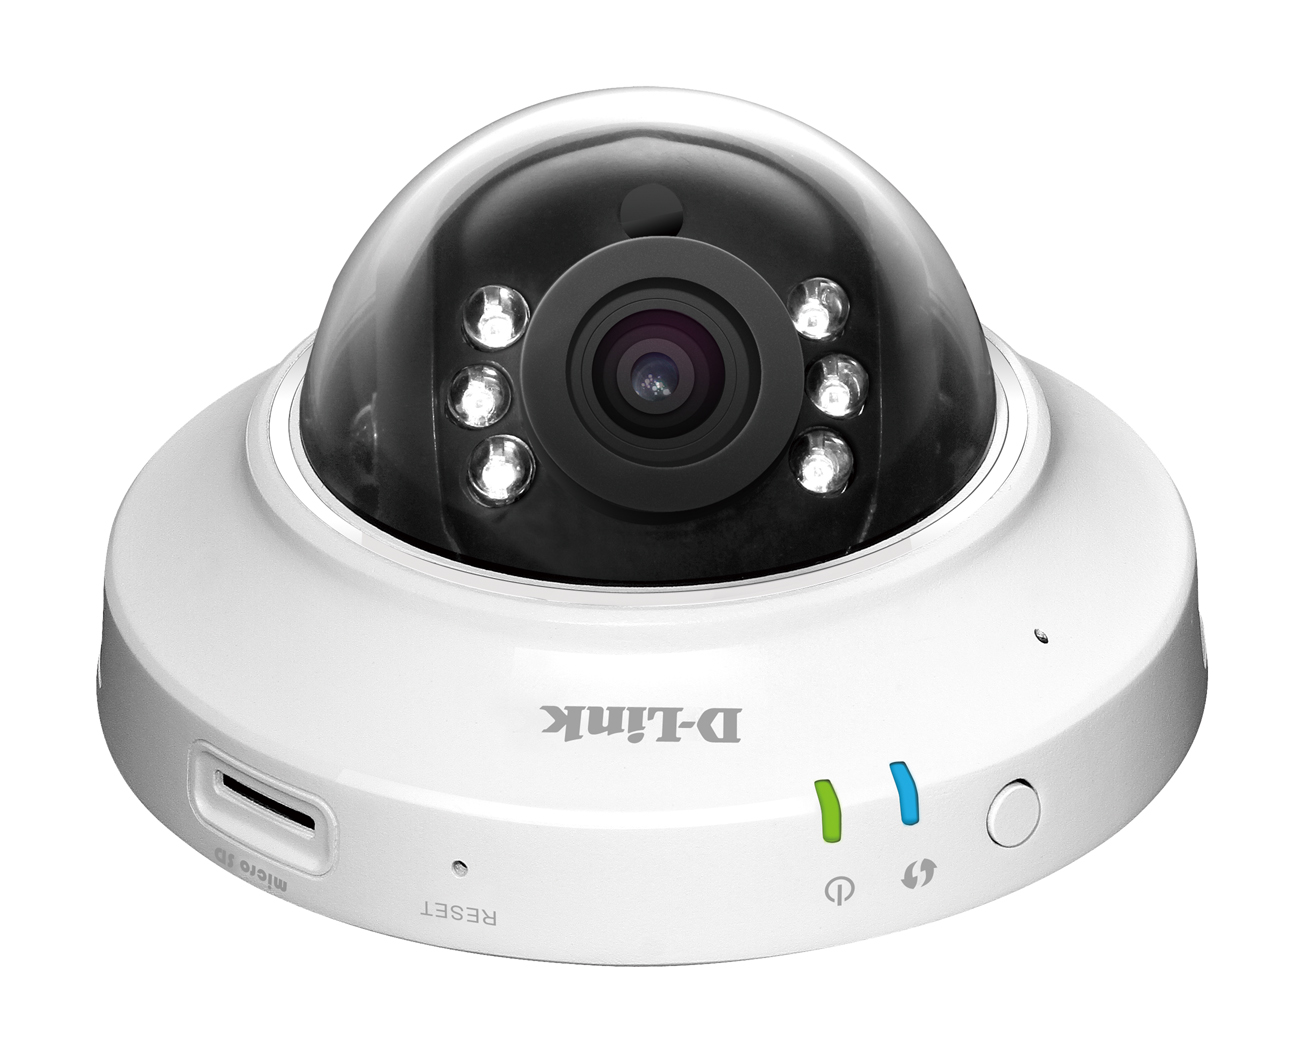 D-Link DCS-6004L IP Camera Driver Windows XP